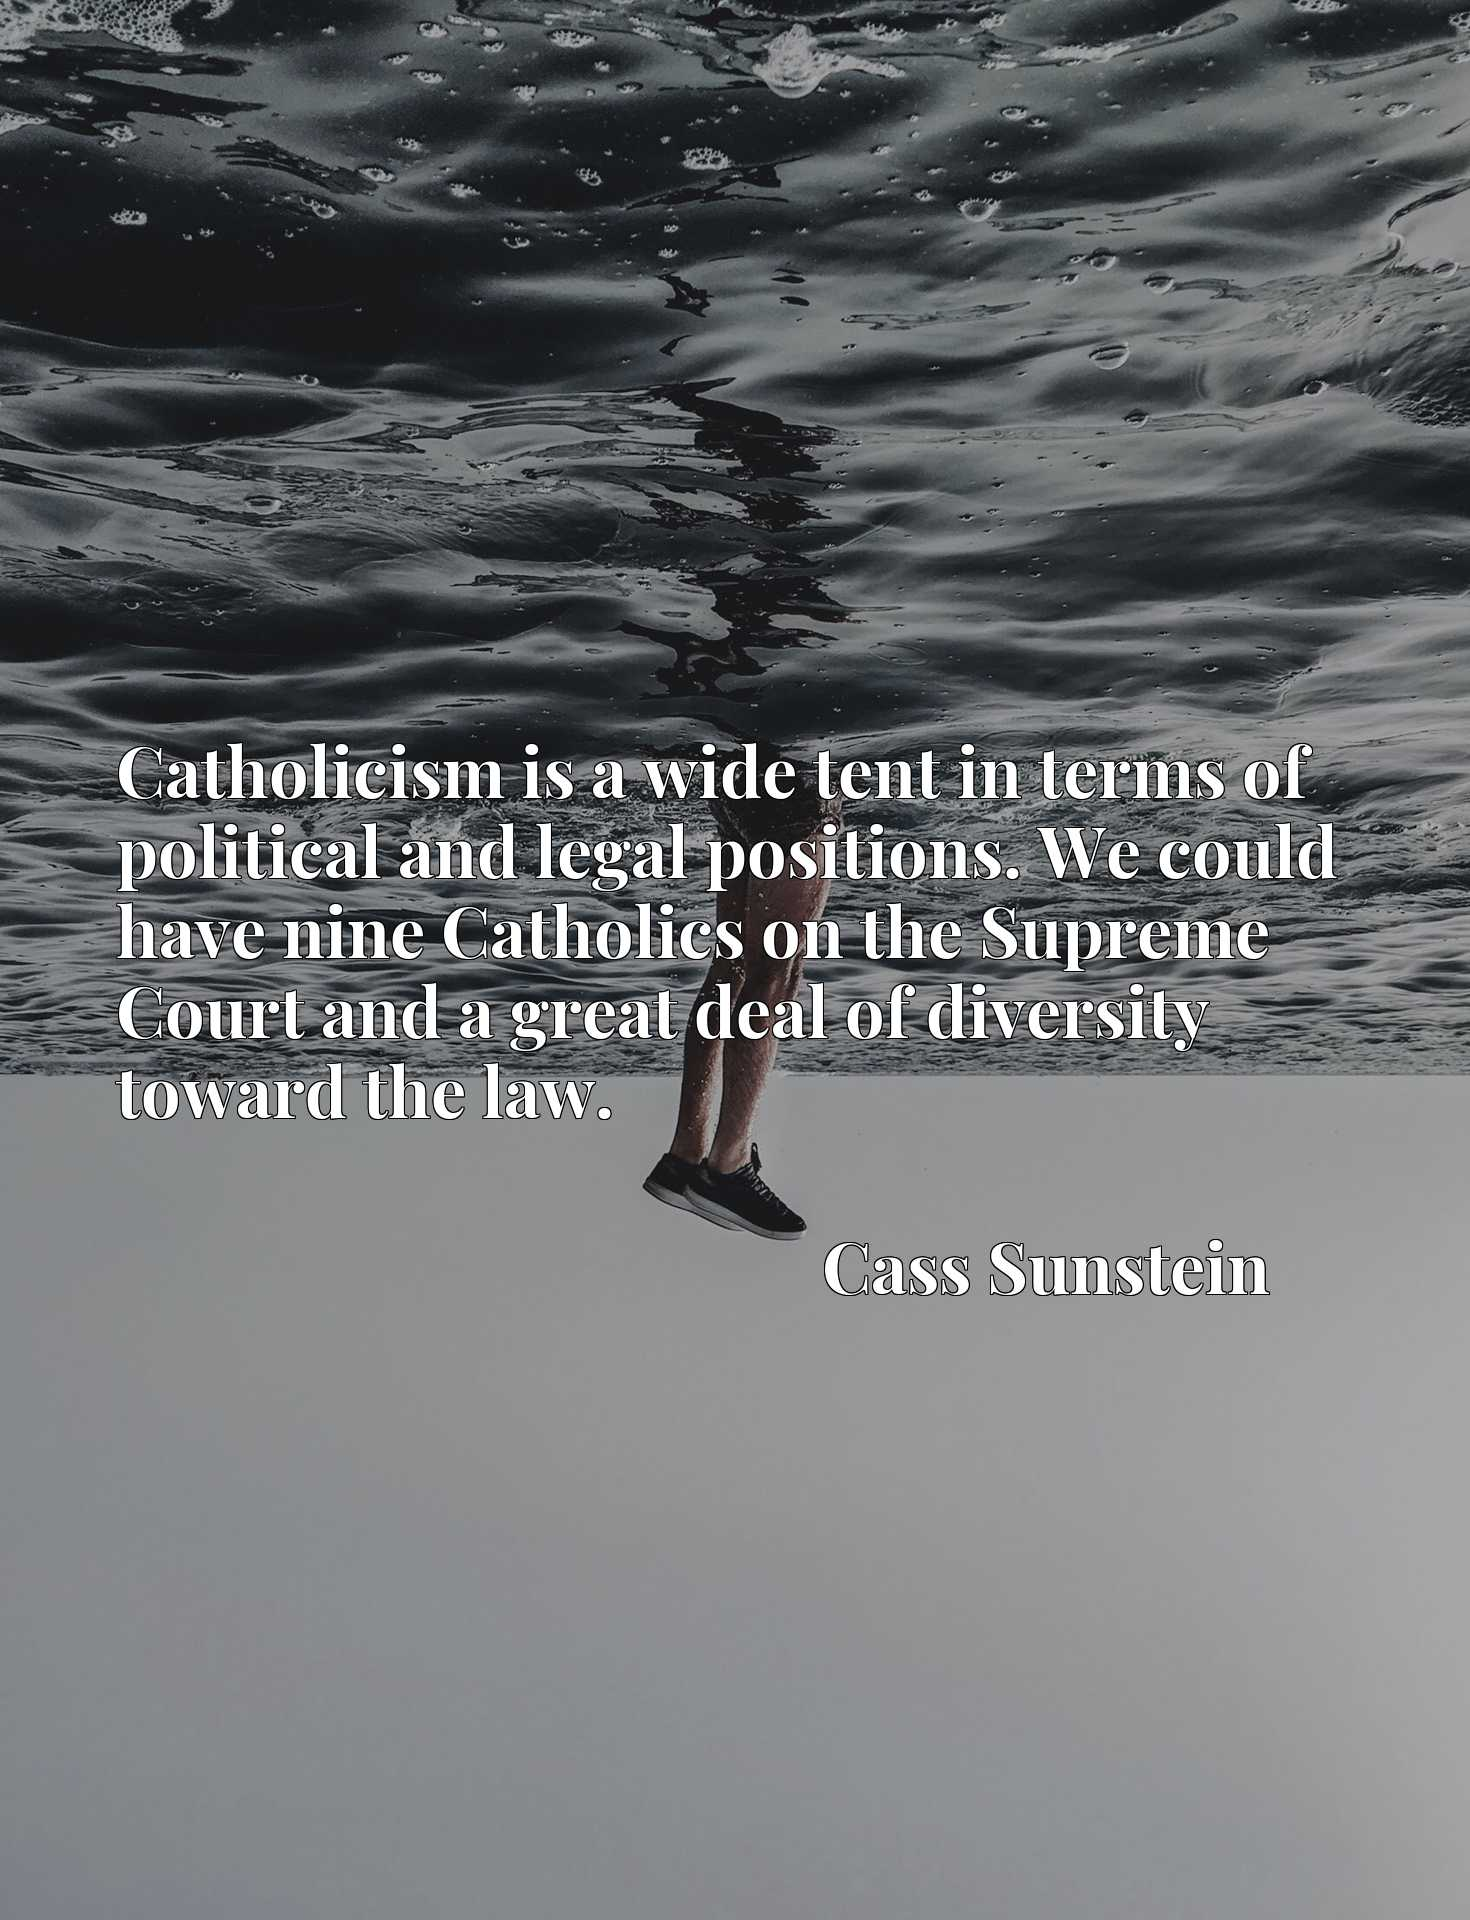 Quote Picture :Catholicism is a wide tent in terms of political and legal positions. We could have nine Catholics on the Supreme Court and a great deal of diversity toward the law.